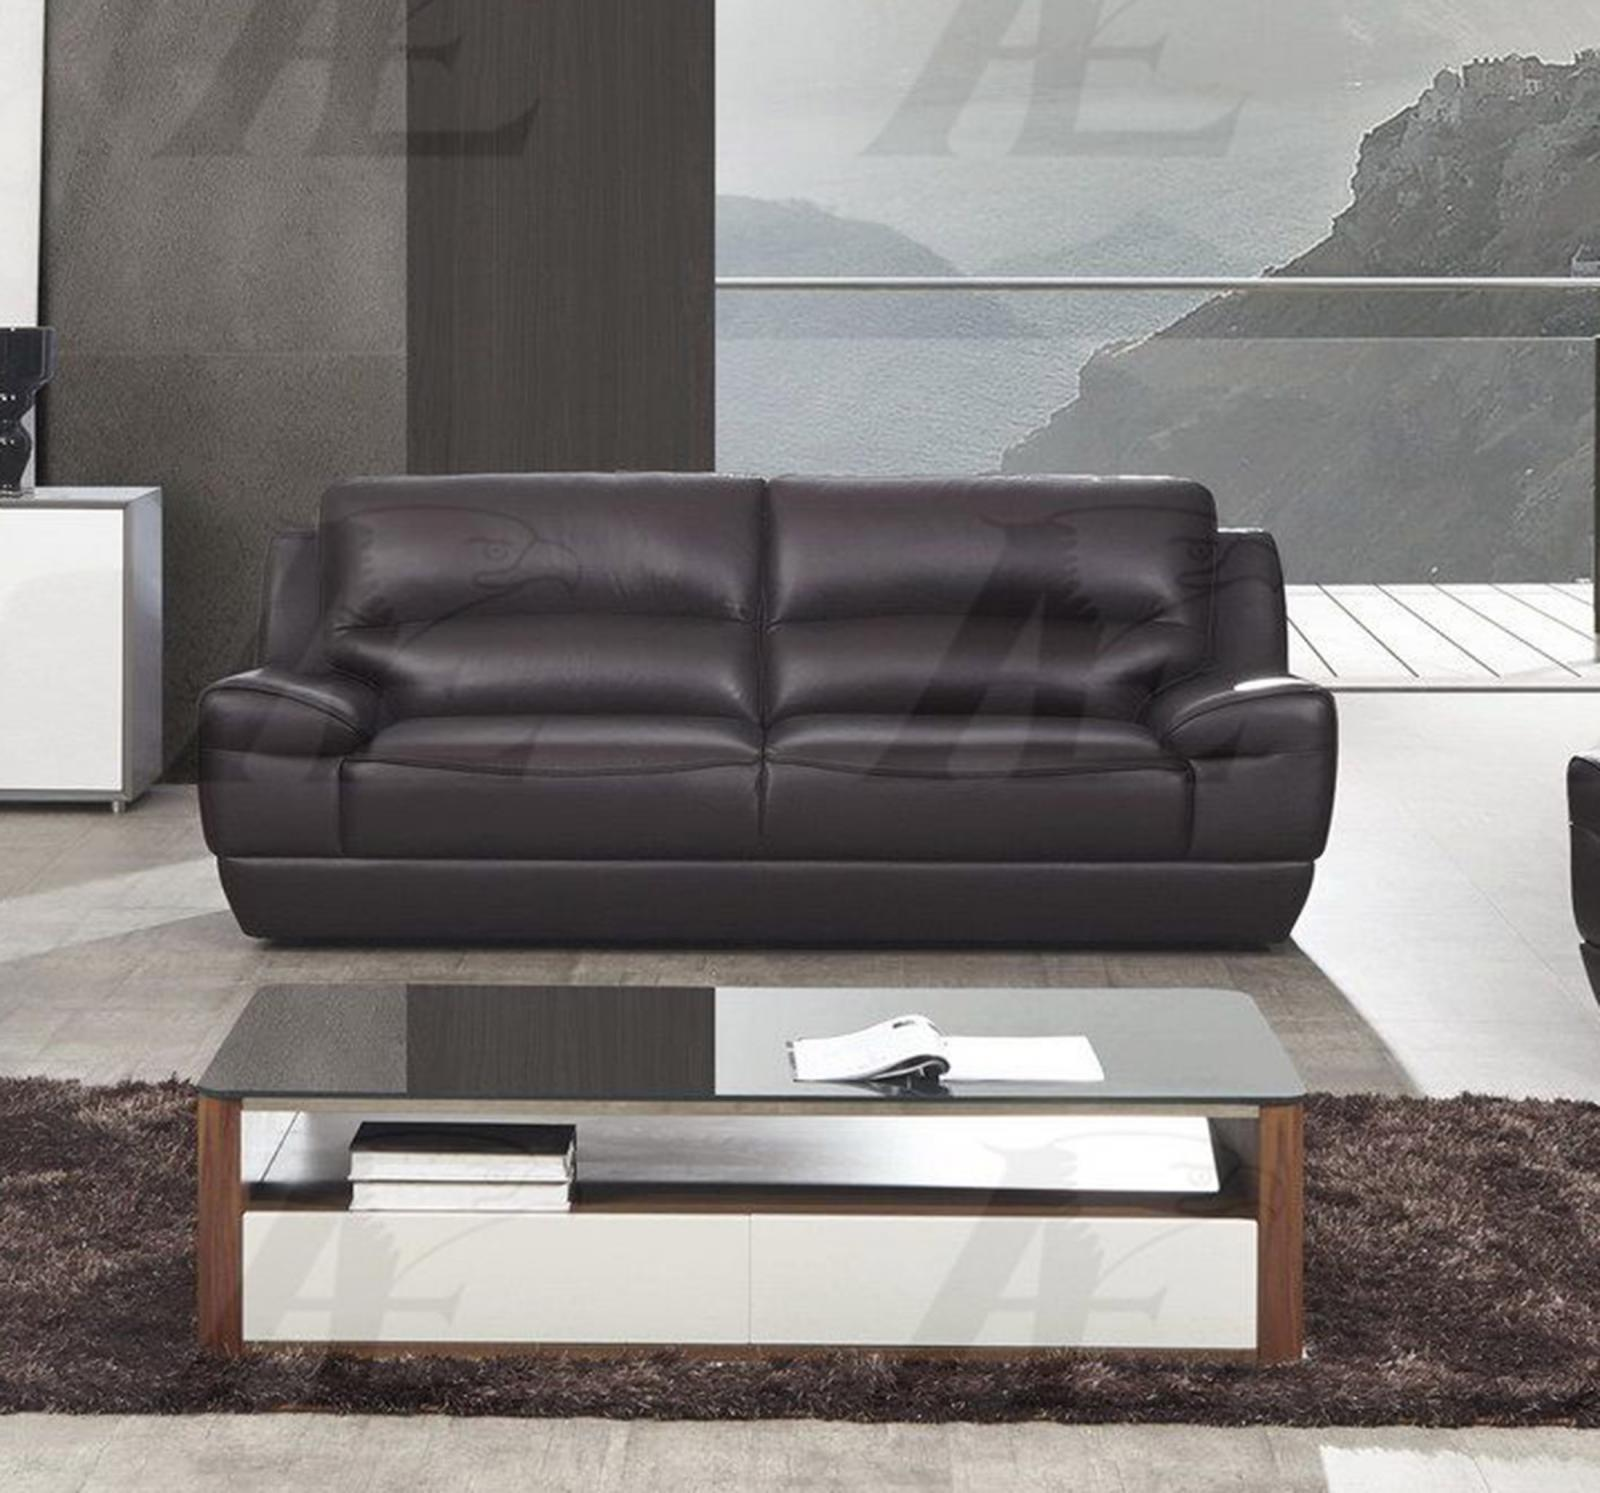 American Eagle EK018-DB Dark Brown Sofa Italian Leather